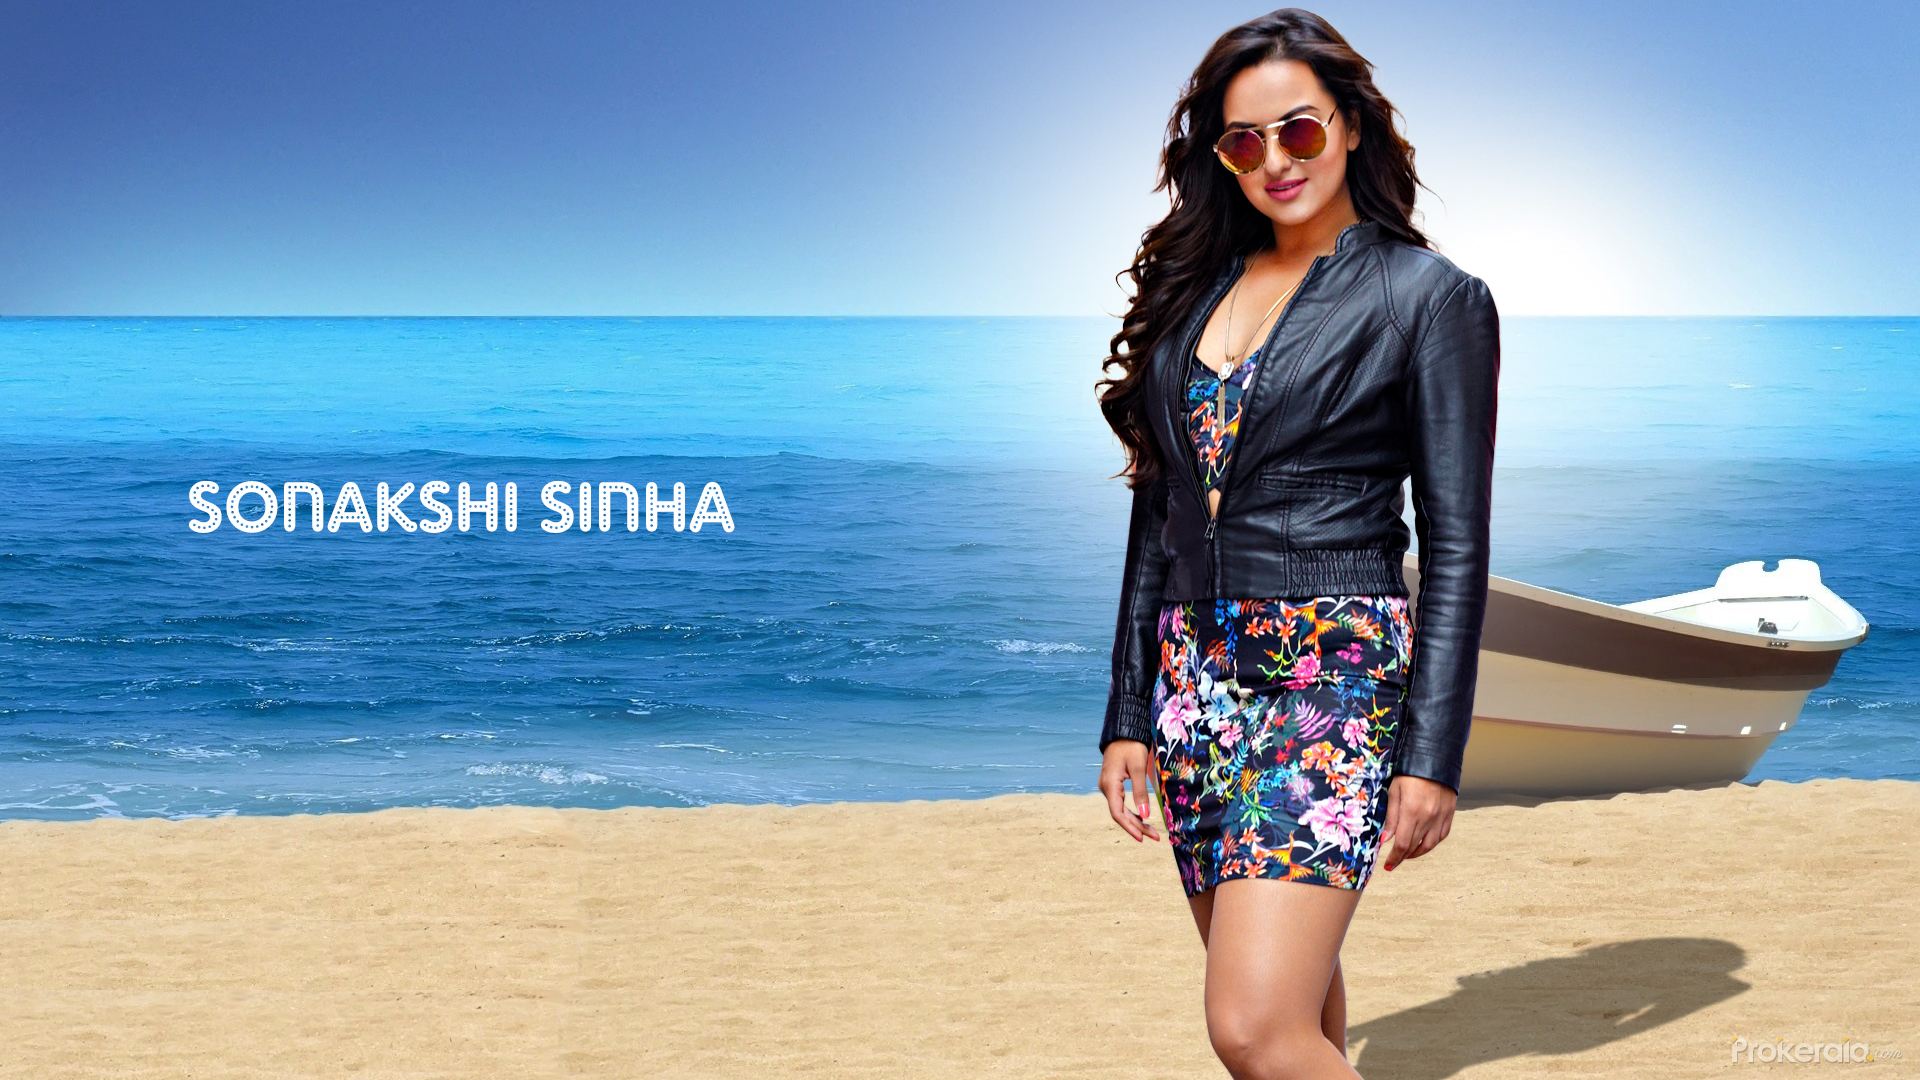 Sonakshi sinha sexy wallpapers